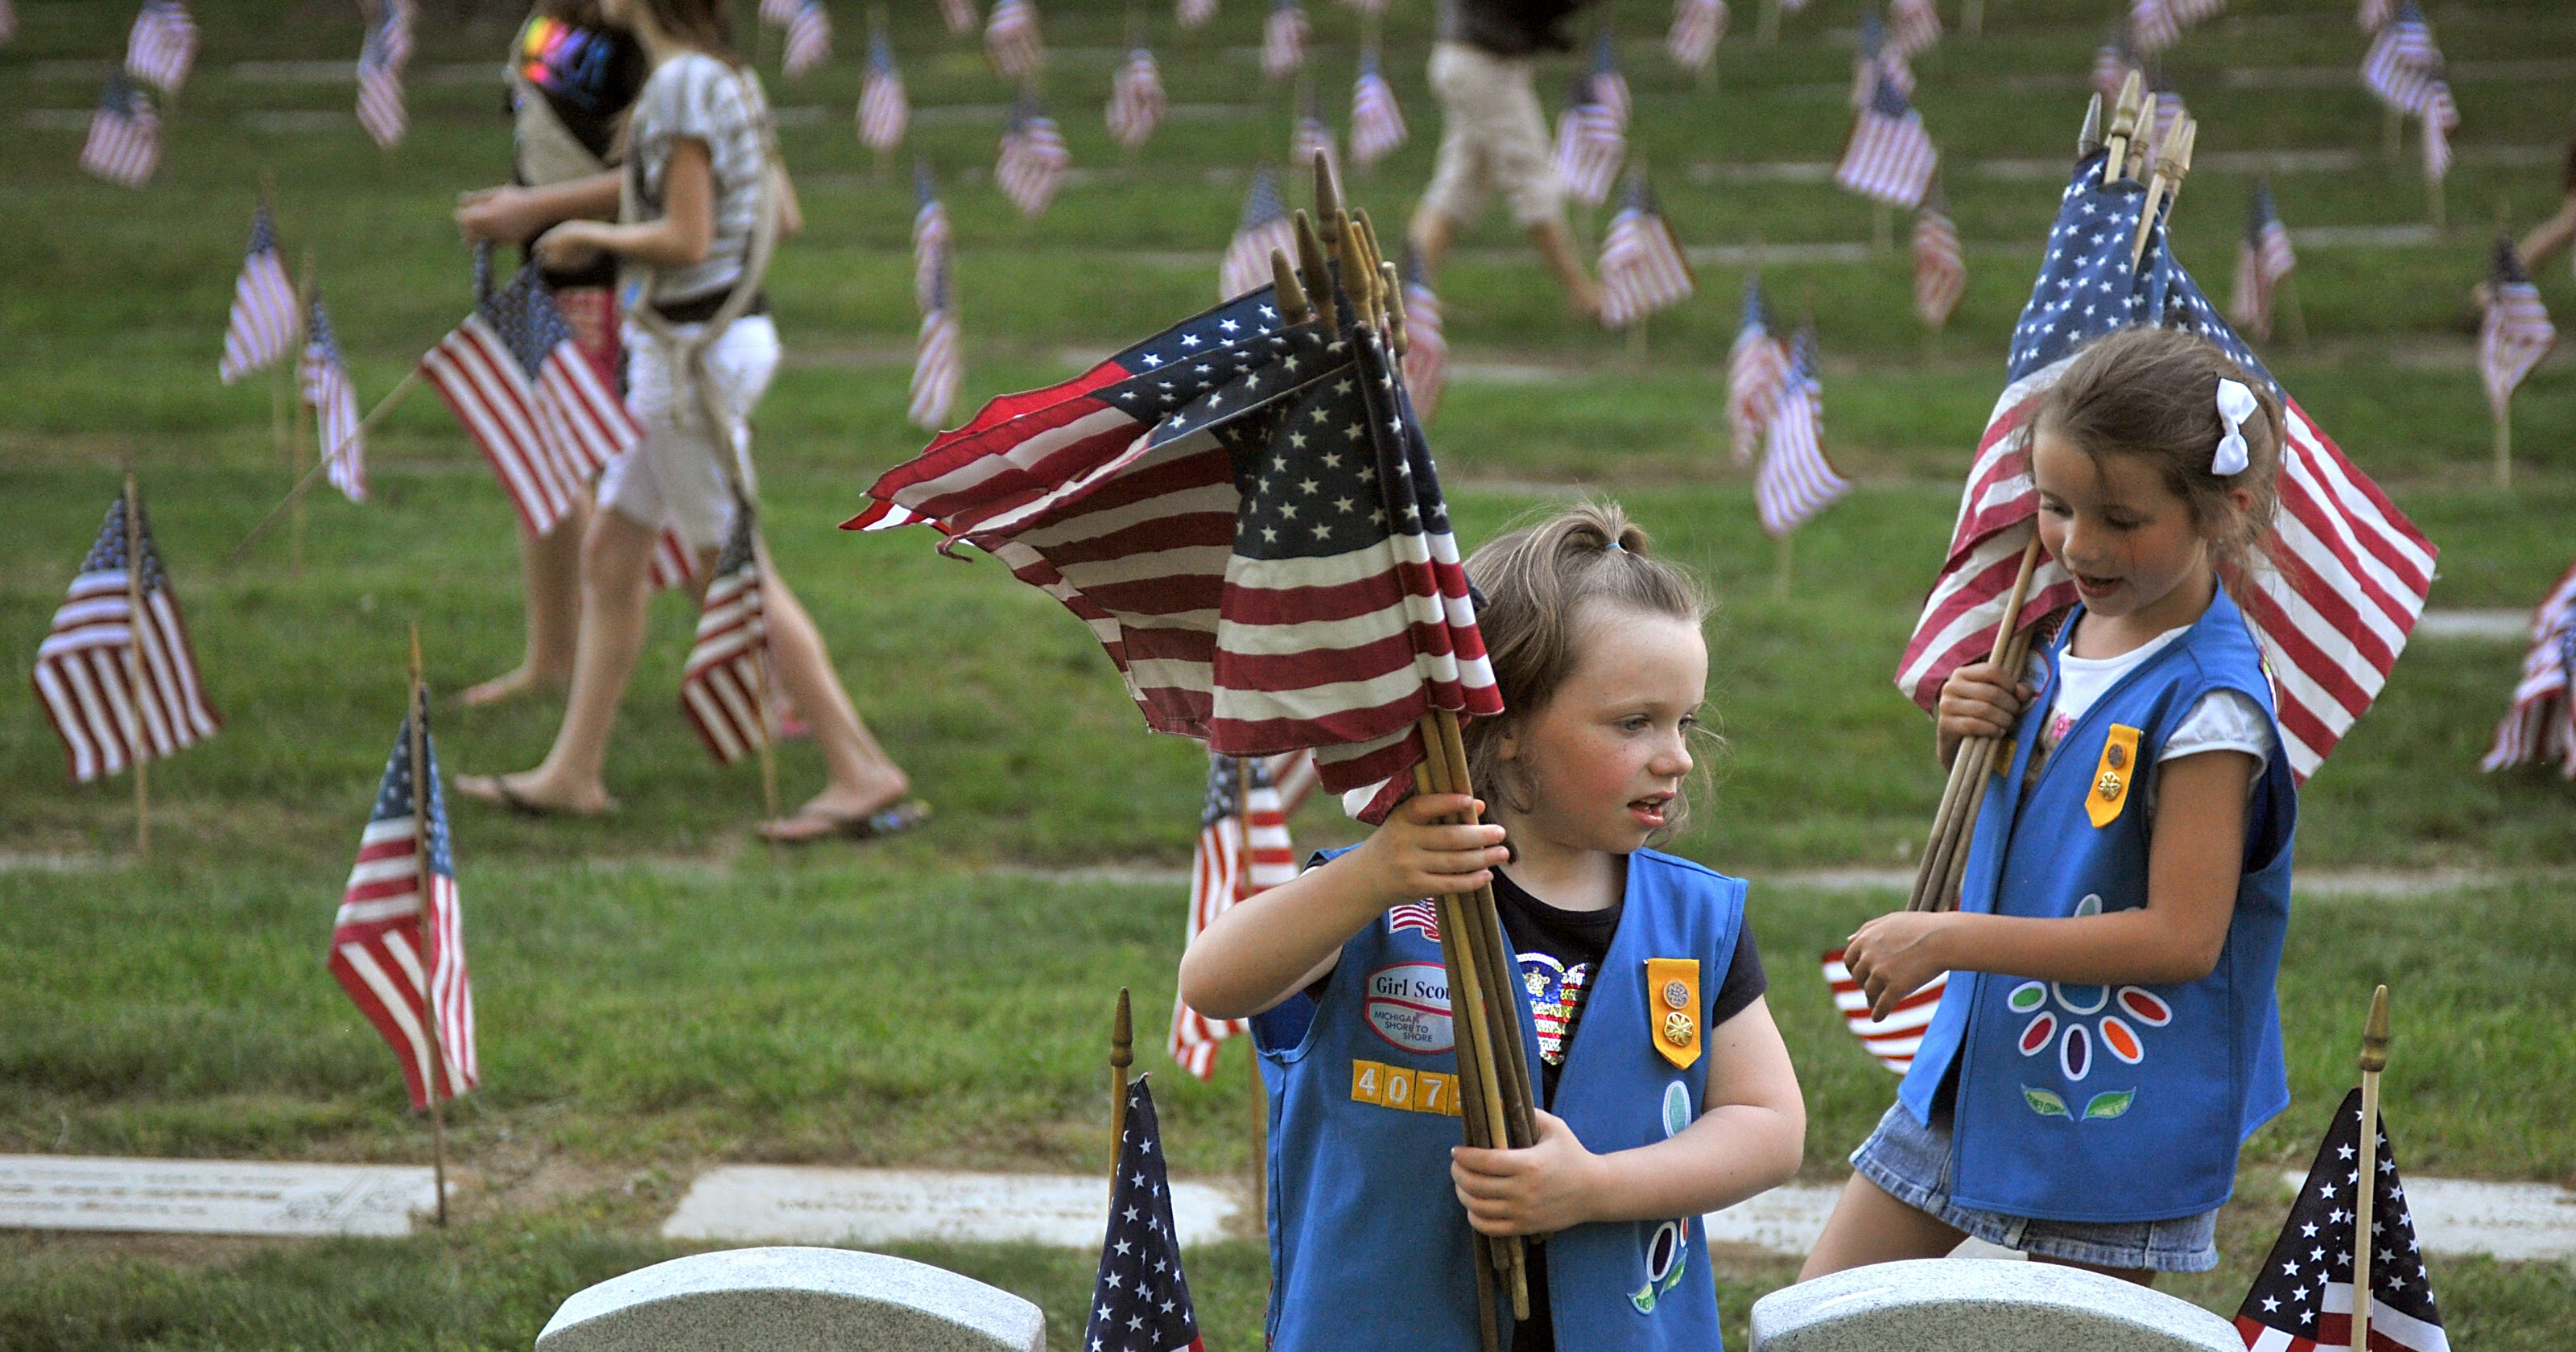 Girl Scouts: There's no need to let girls into Boy Scouts